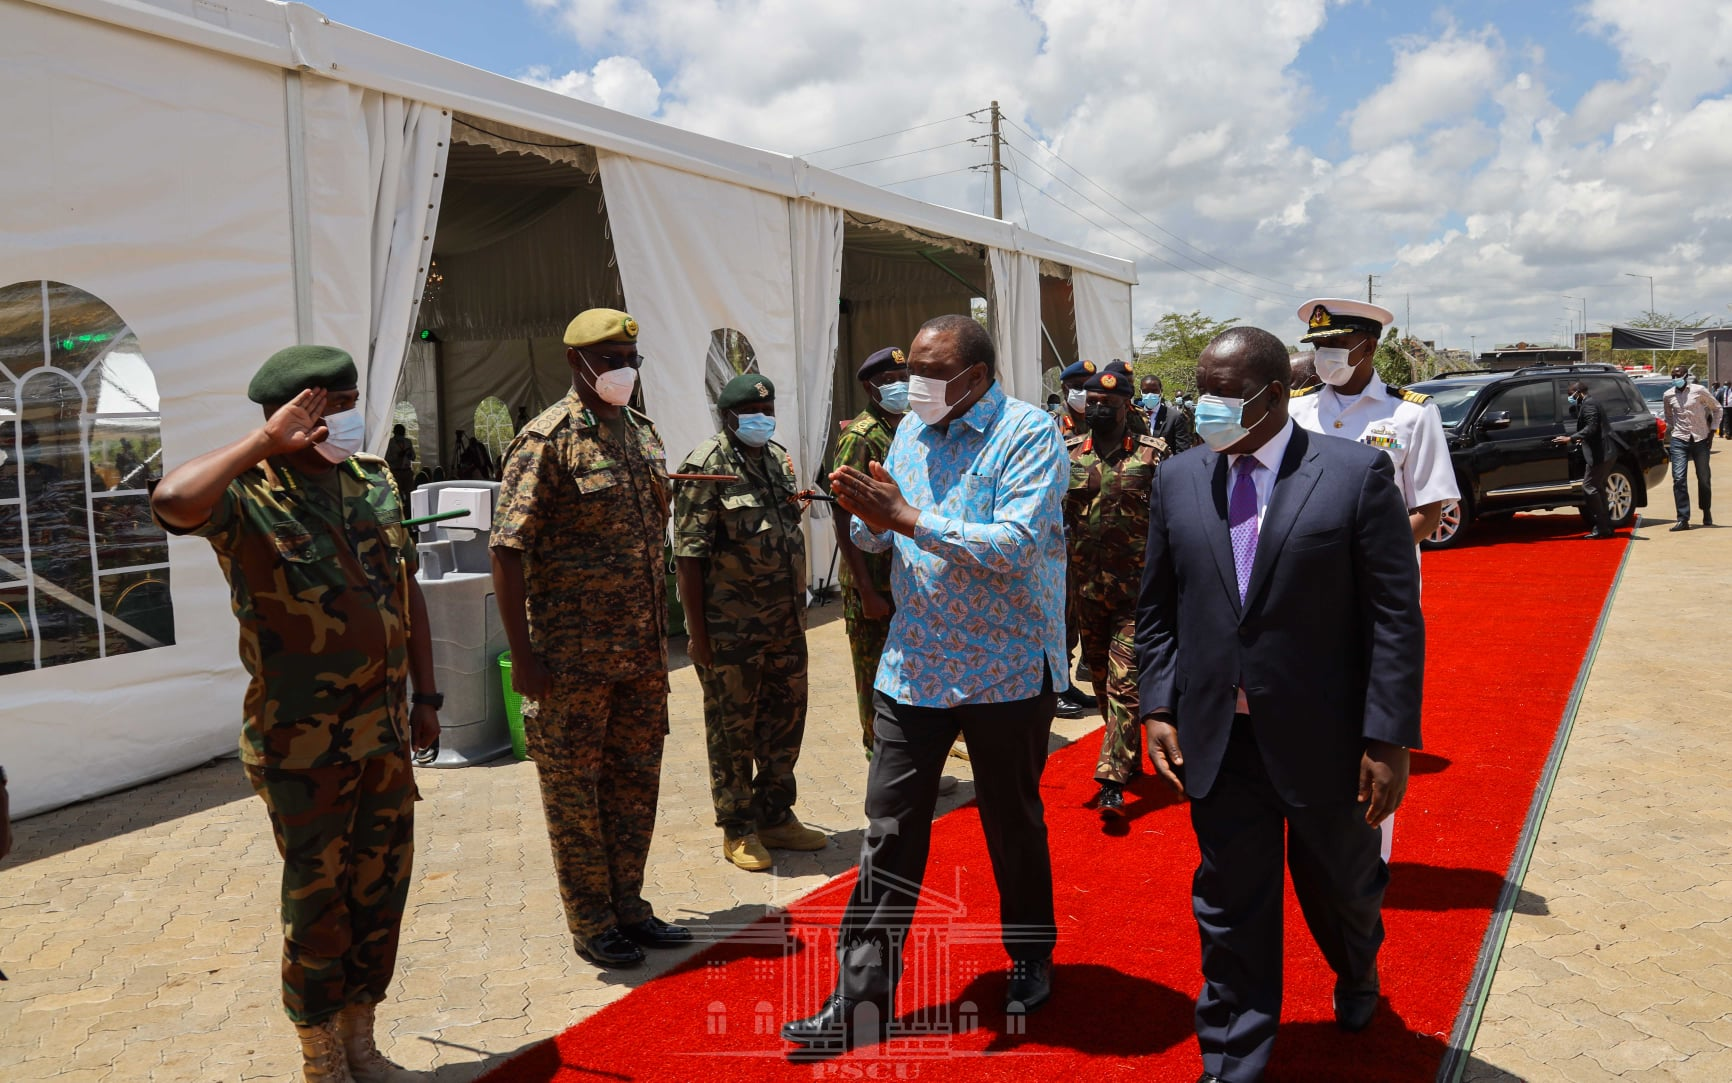 President Uhuru Kenyatta and Interior CS Fred Matiang'i arrive at the National Security Industries in Ruiru, Kiambu County to commission the Small Arms Factory on April 8, 2021. |Courtesy| PSCU|